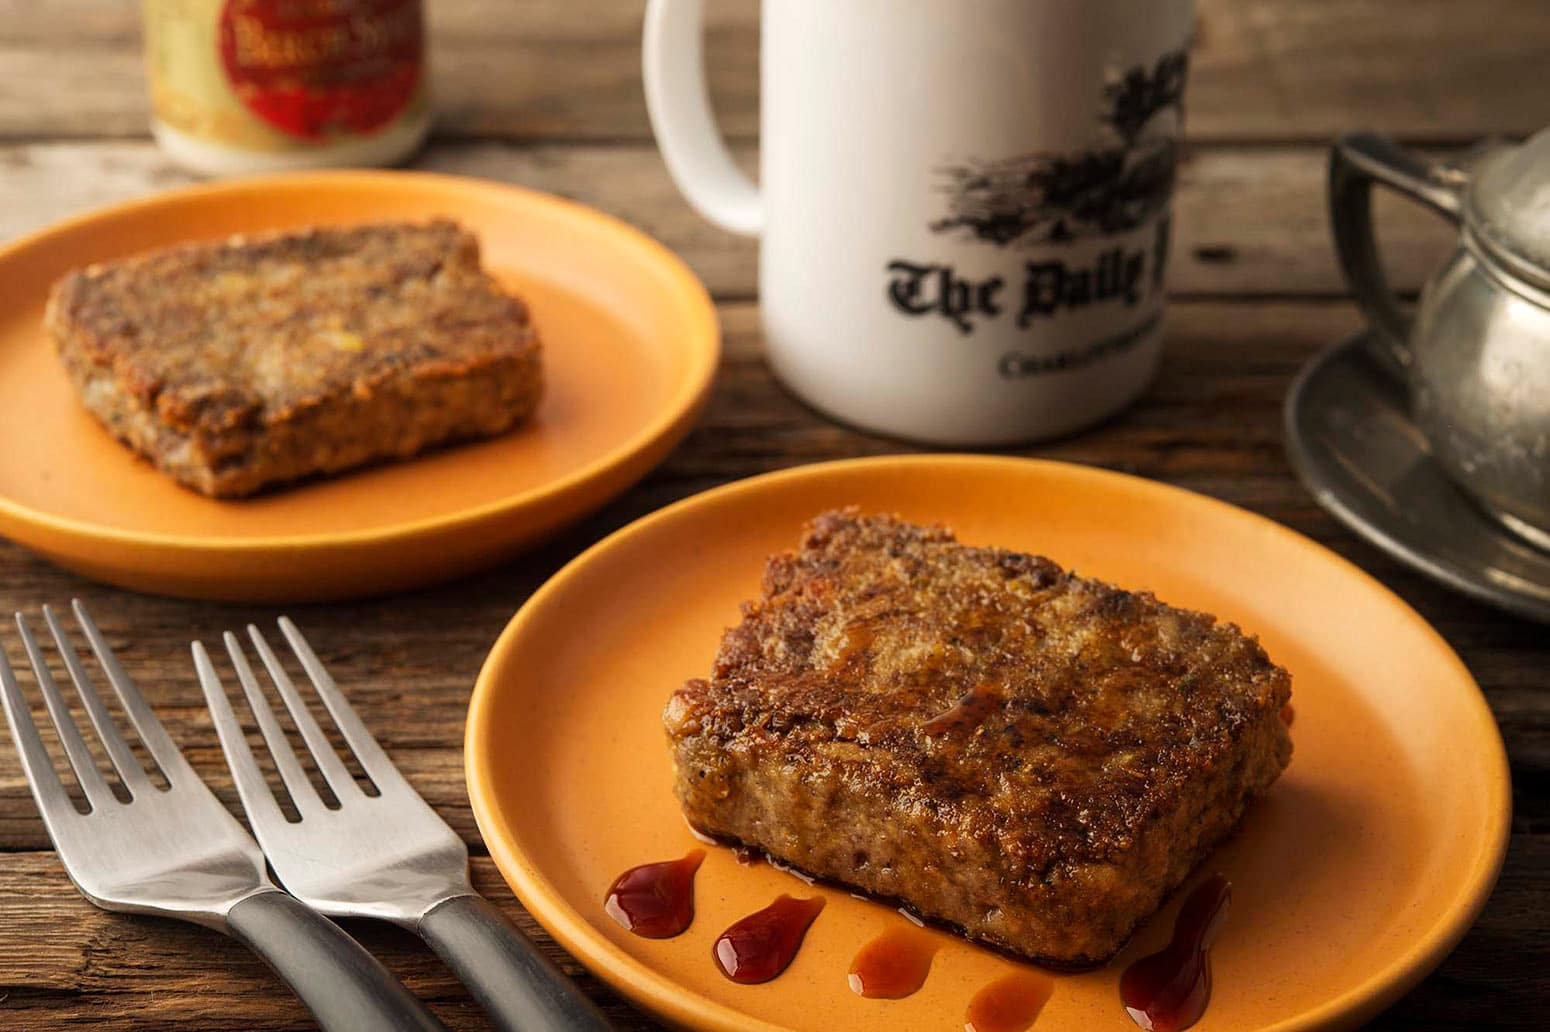 Two plates of scrapple with a cup of coffee.